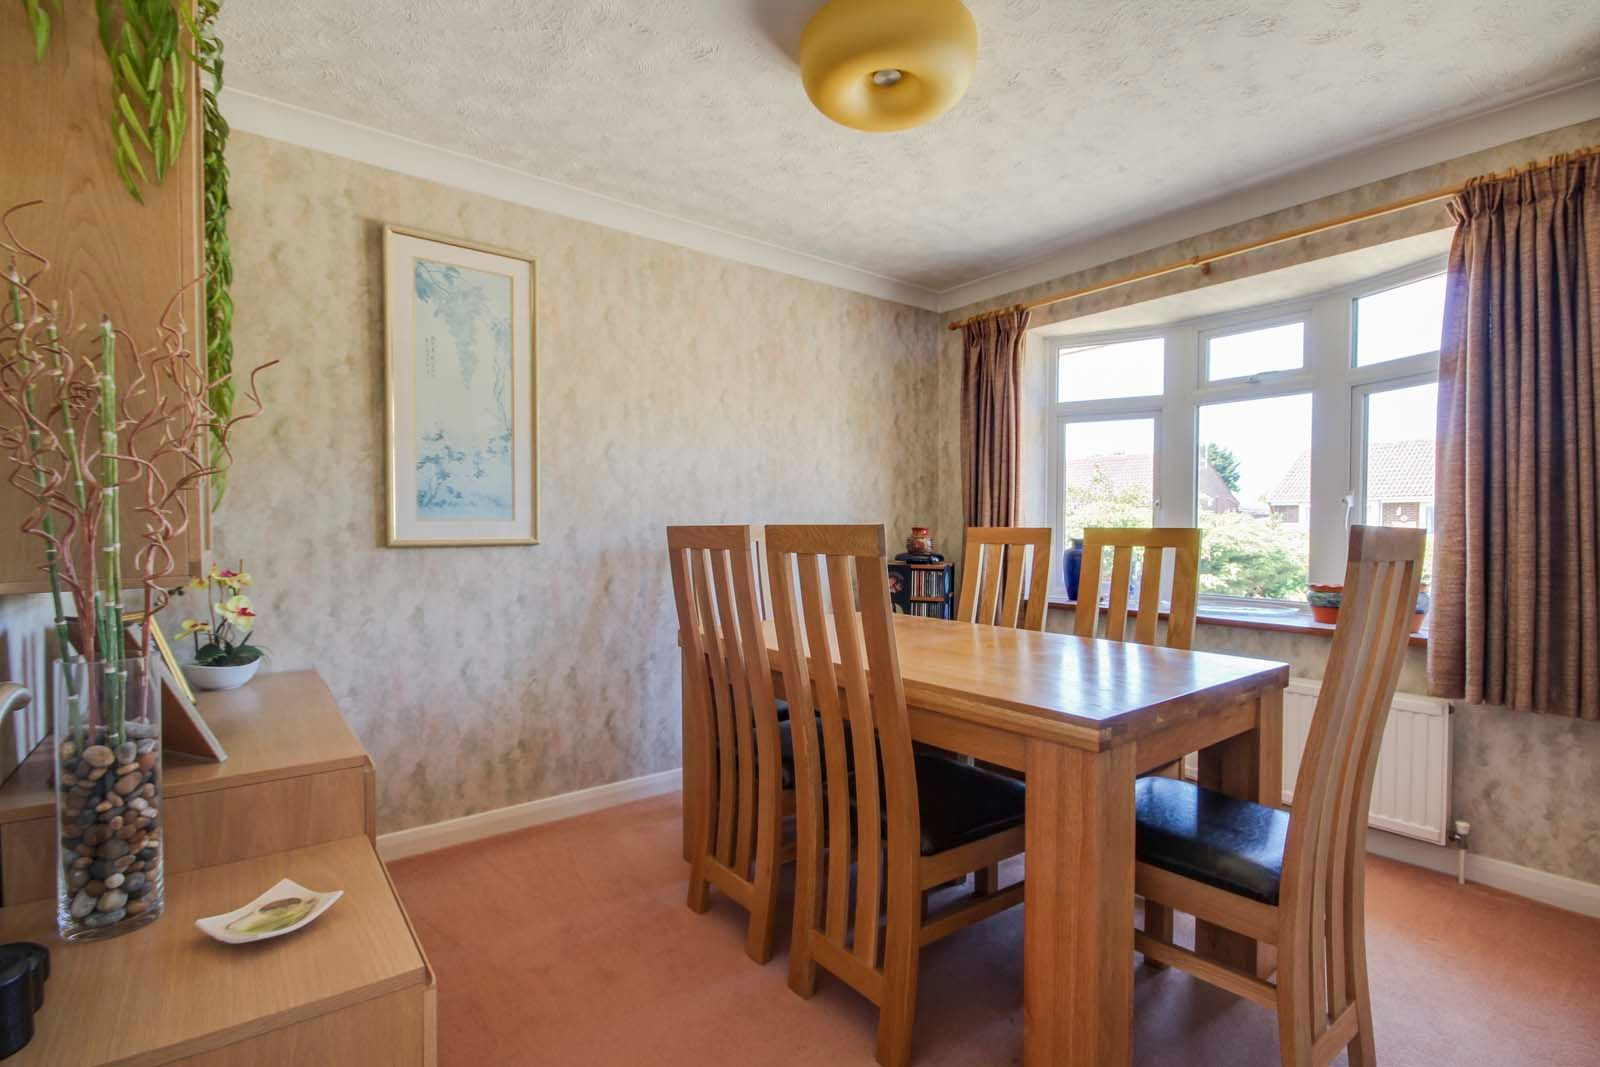 4 bed house for sale in Meadow Park COMP July 2019 5